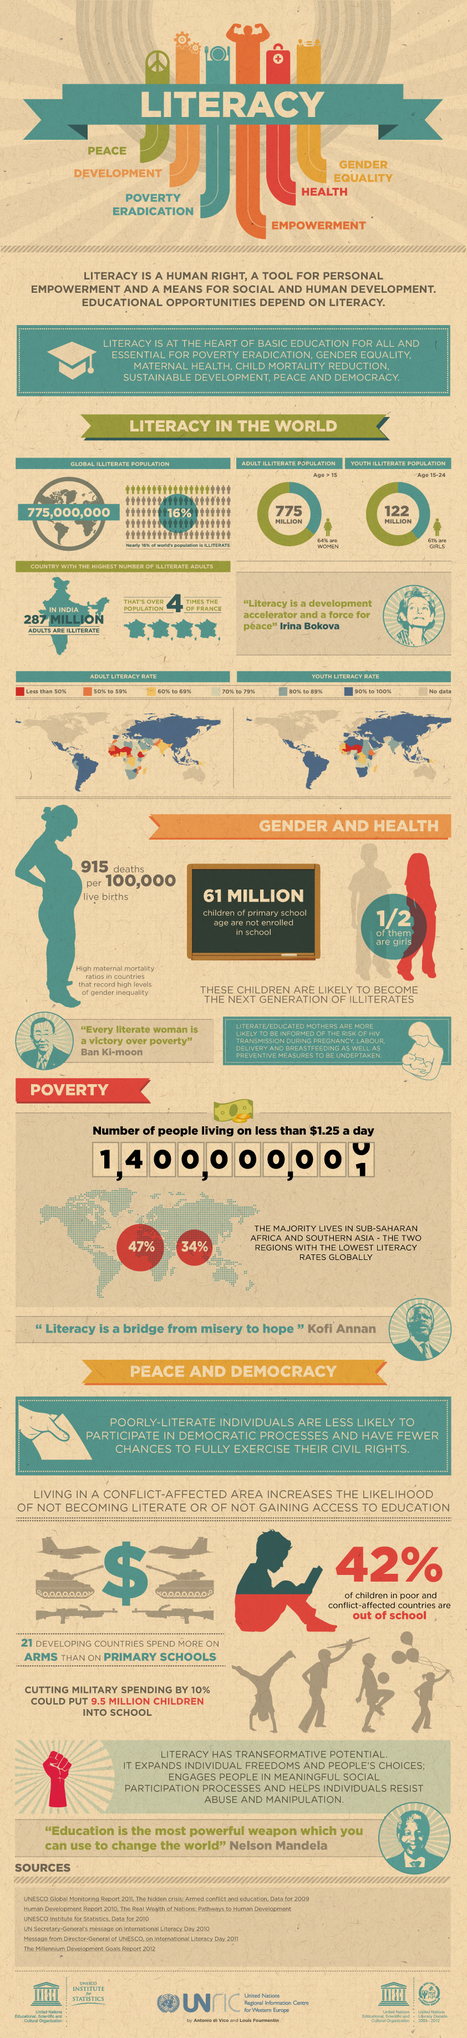 Literacy in the World | Visual.ly | Economic Perspective | Scoop.it